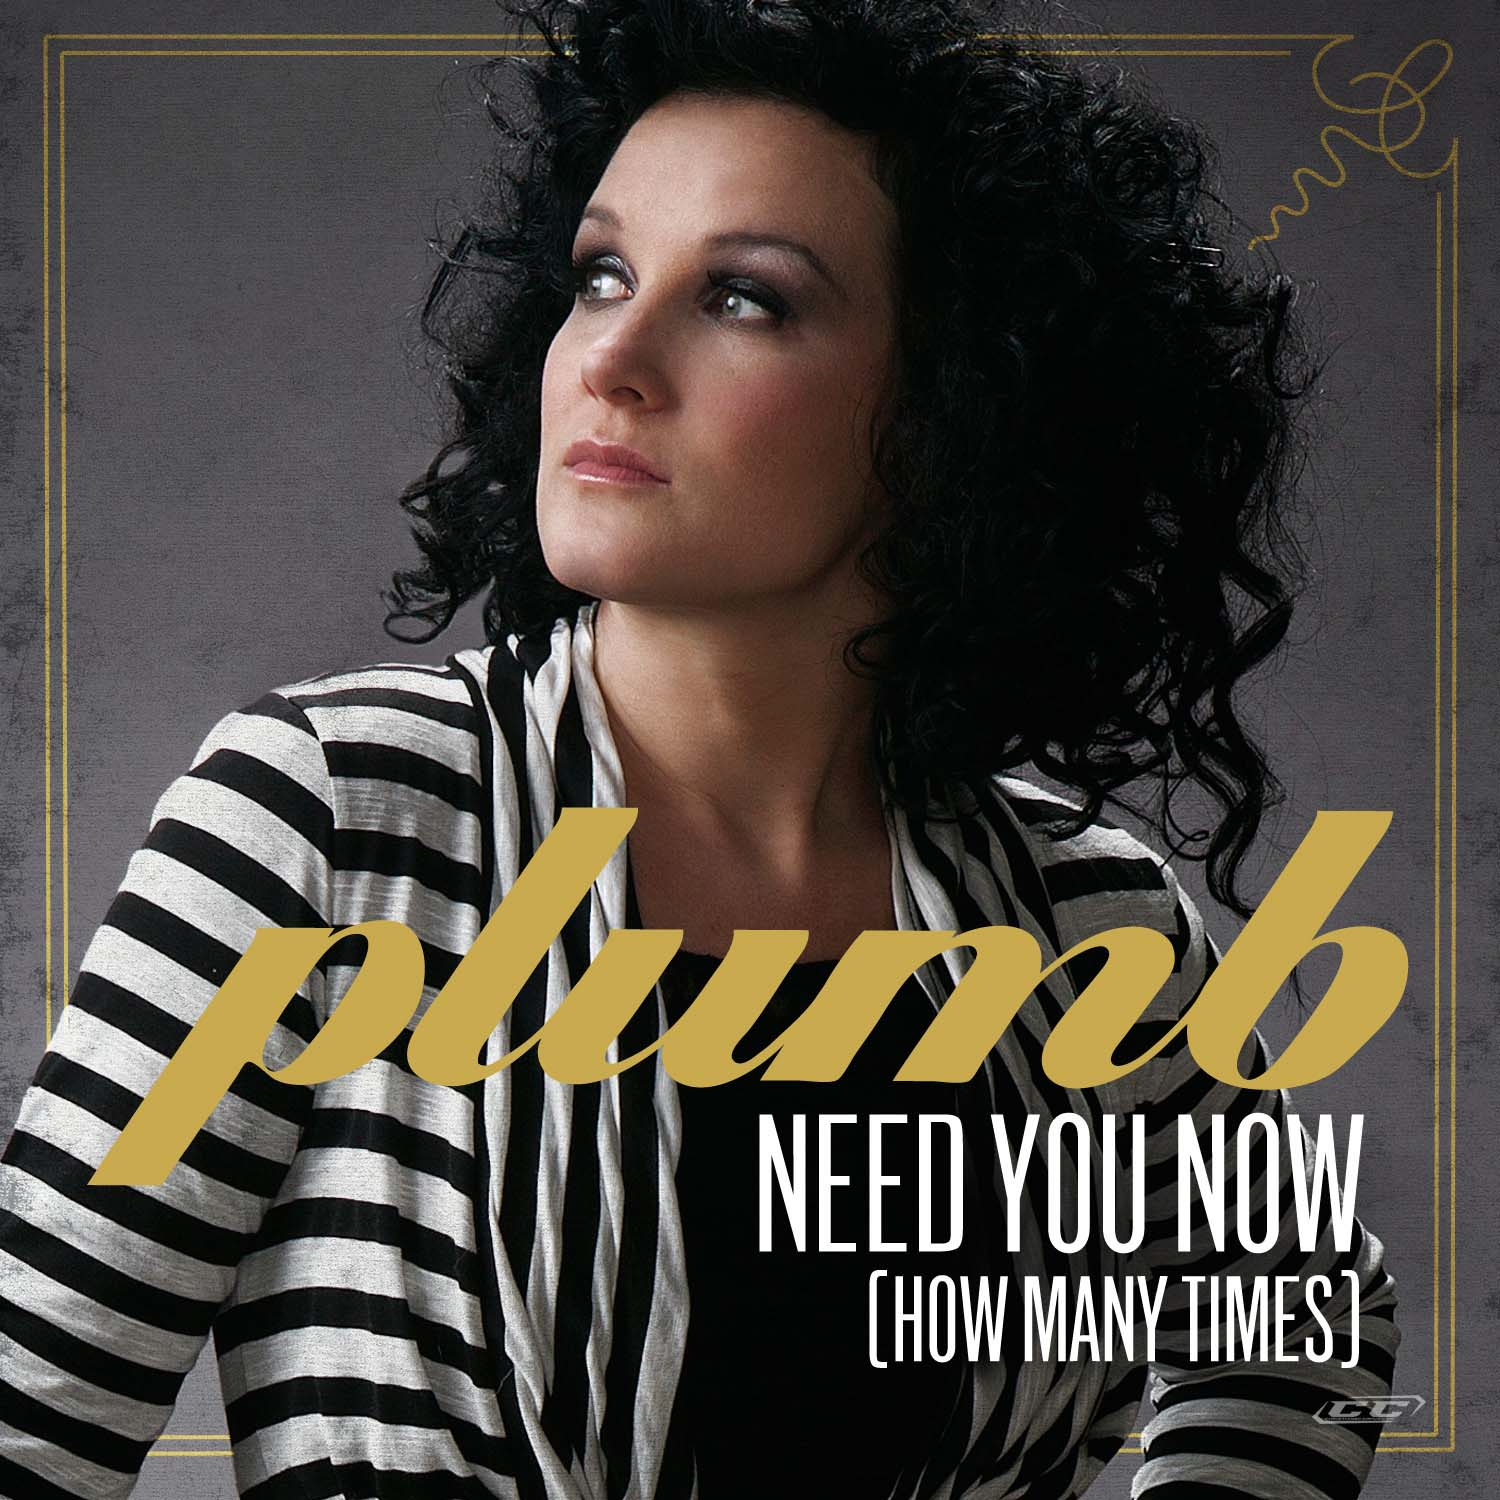 Plumb - Need You Now 2013 Biography and history